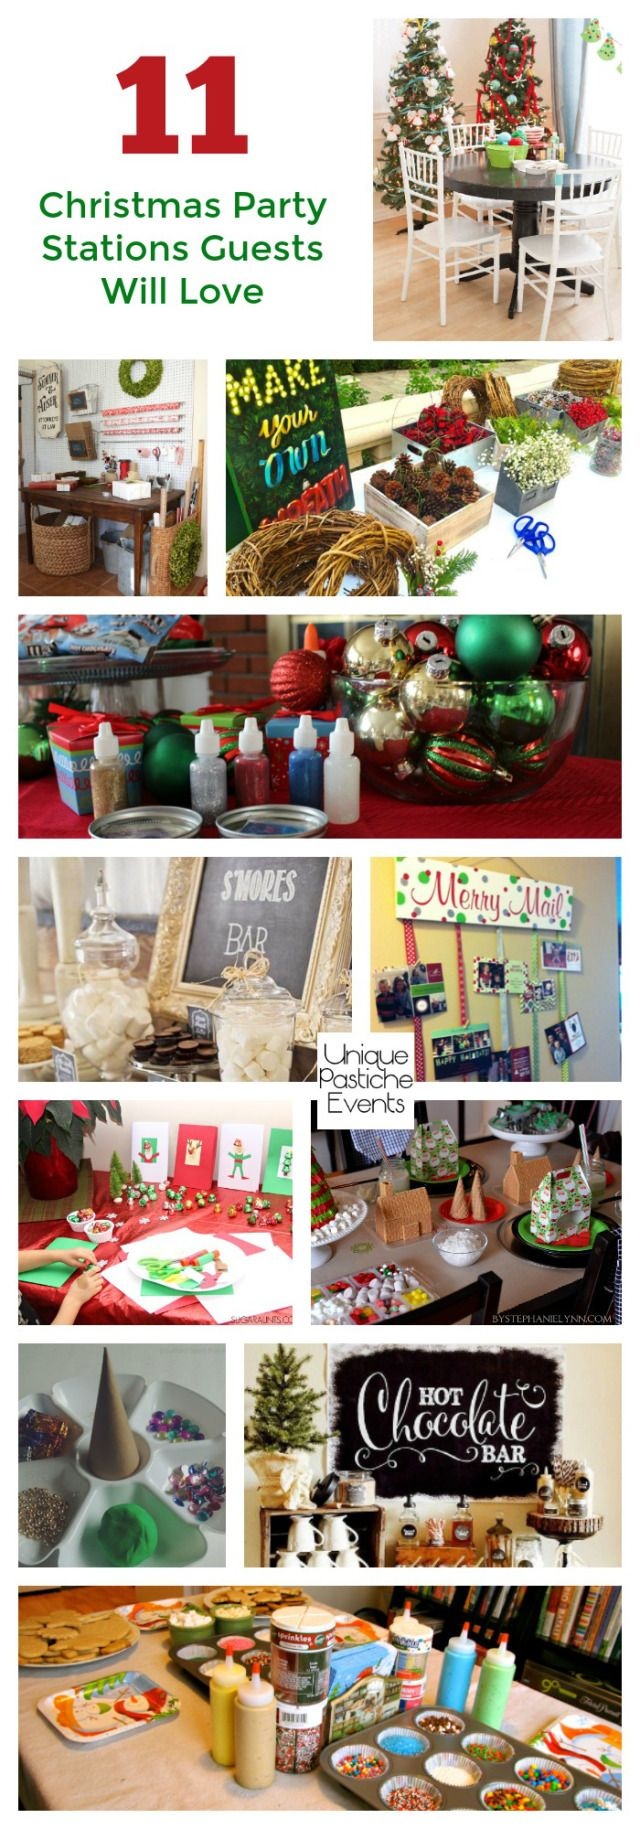 11 Christmas Party Stations Guests Will Love